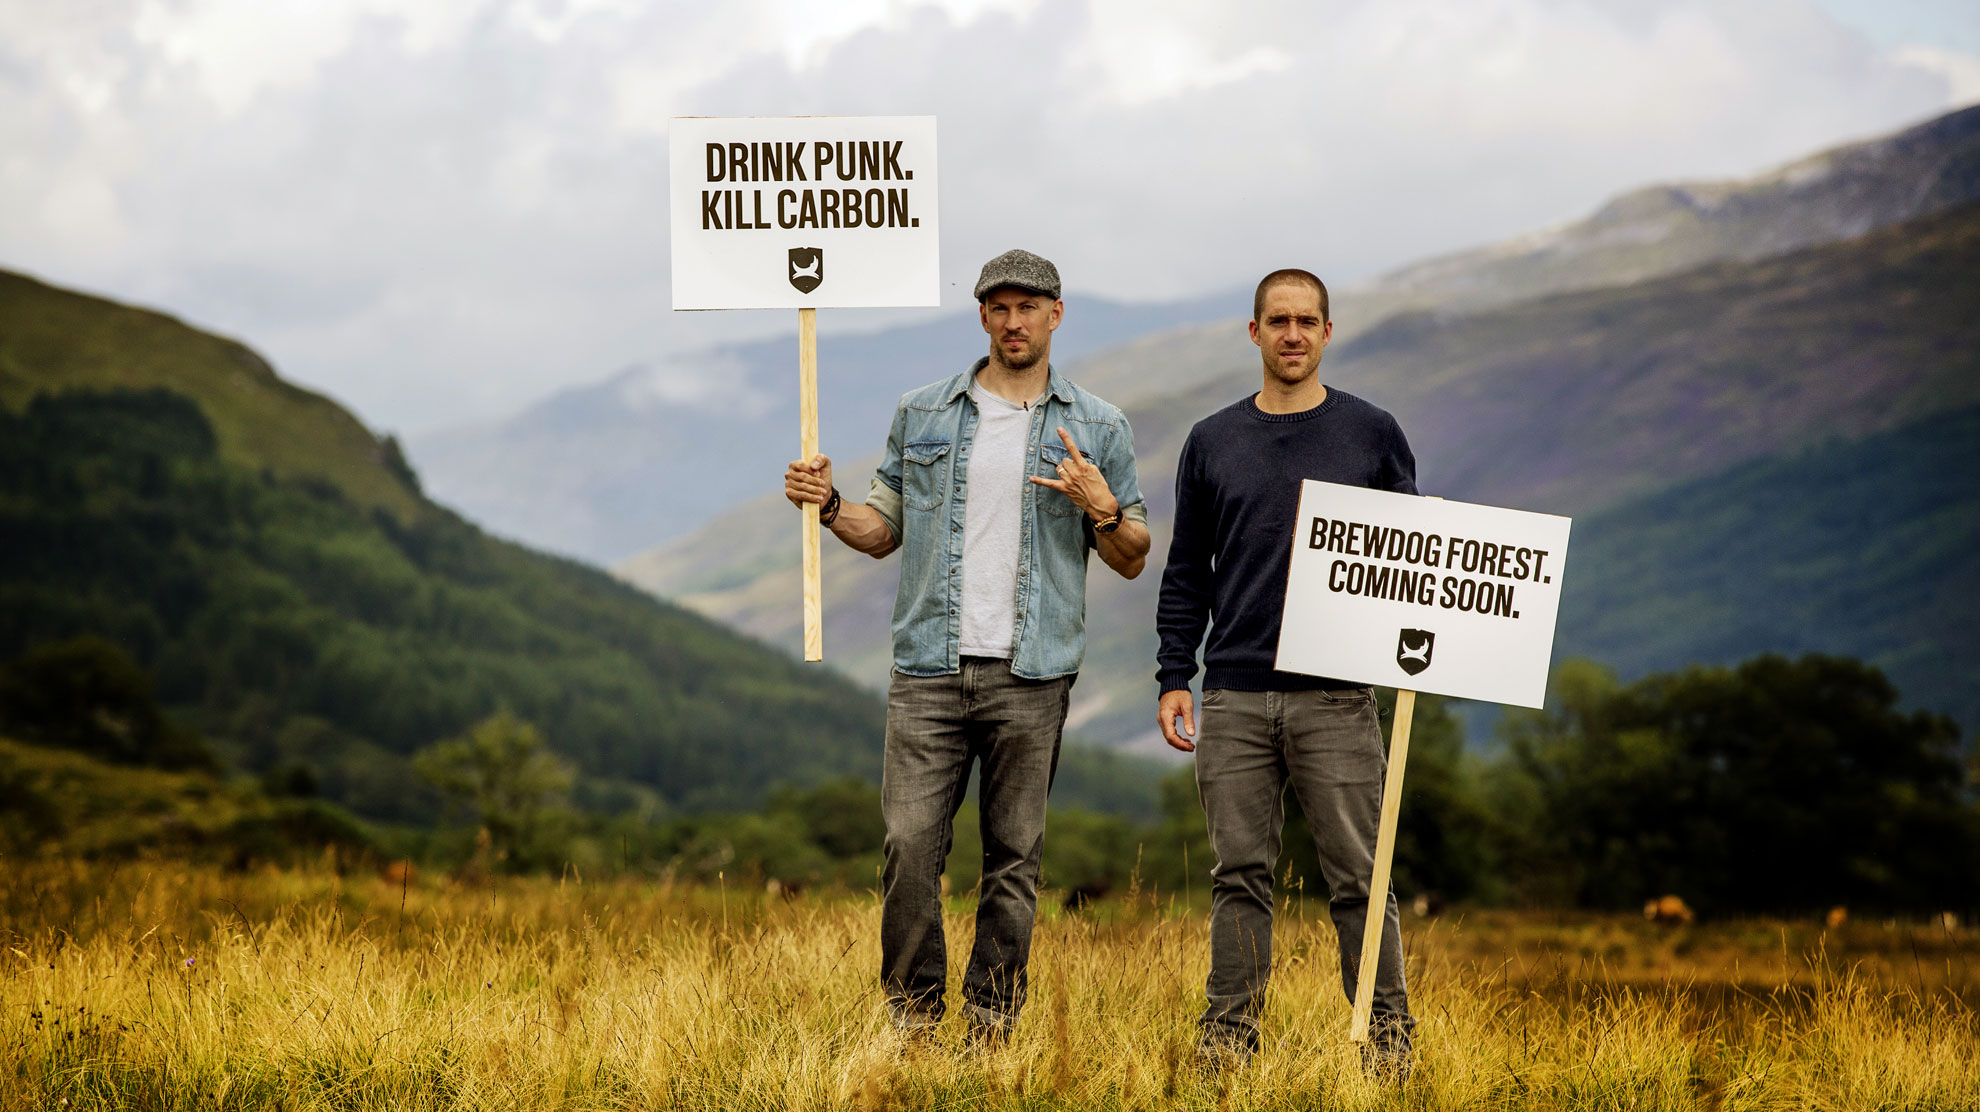 BrewDog branches out into planting trees